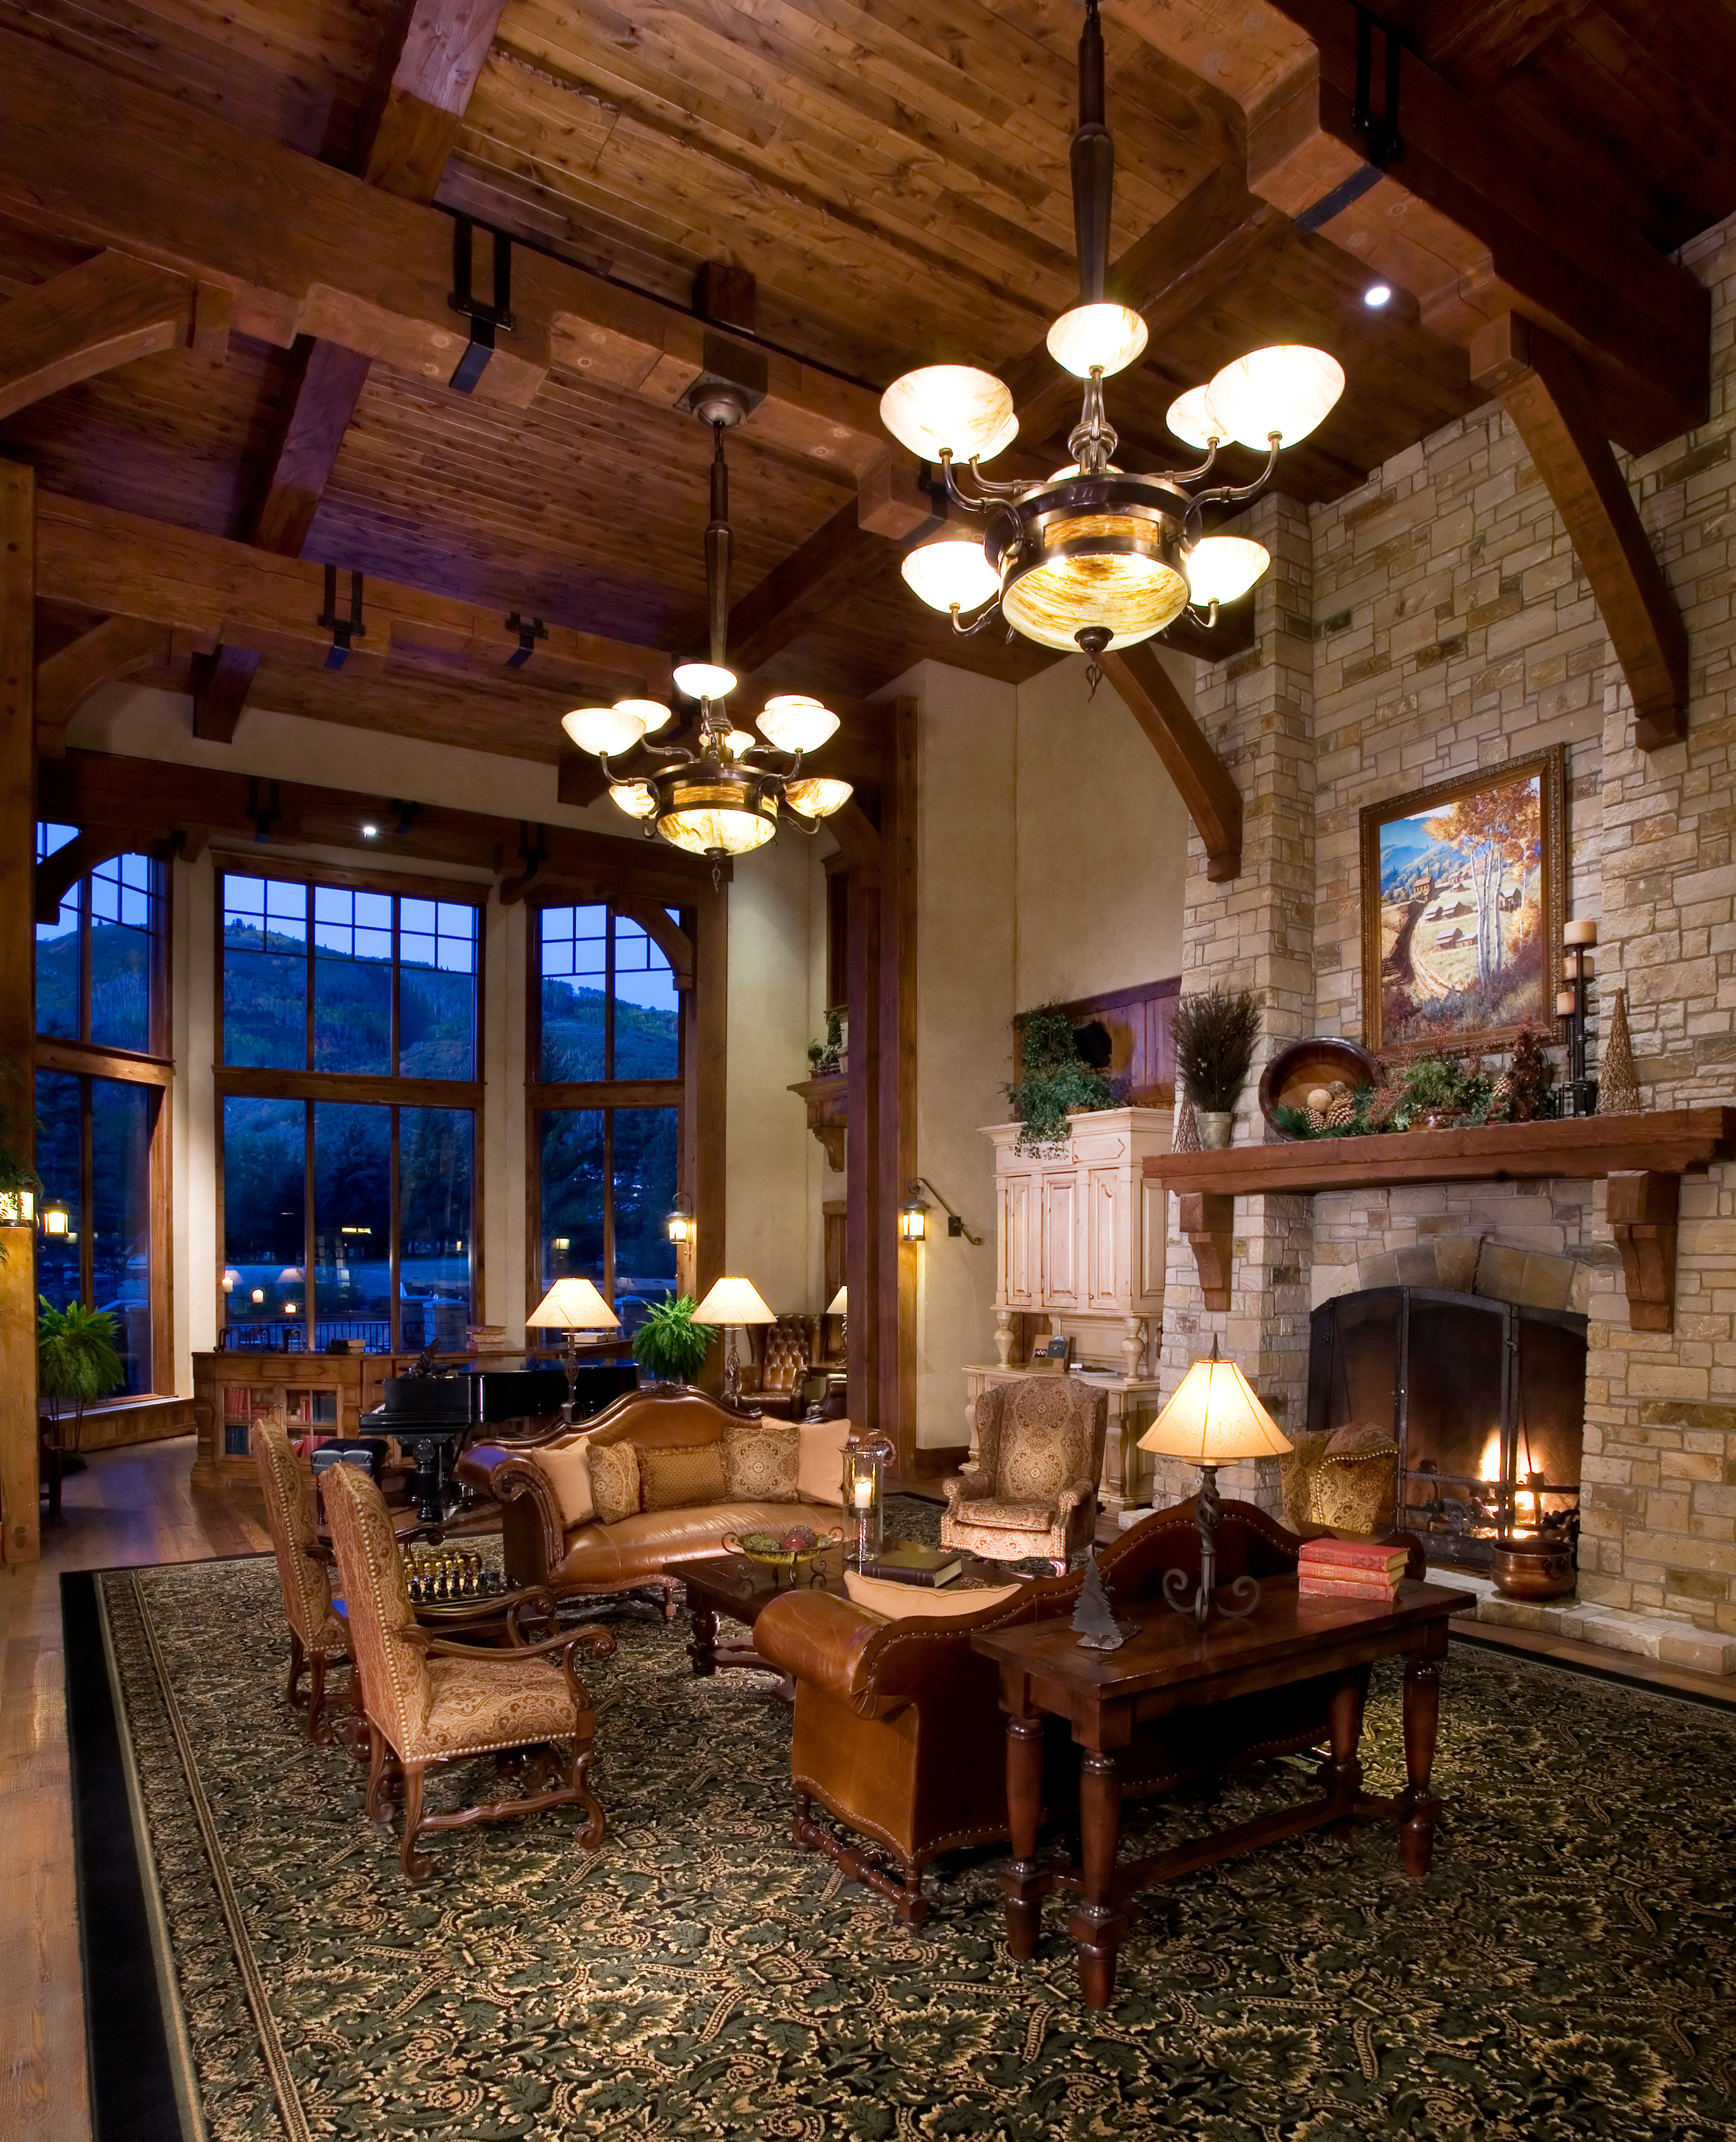 Fireplace property building home house living room lighting cottage farmhouse restaurant mansion log cabin Resort Lobby Villa